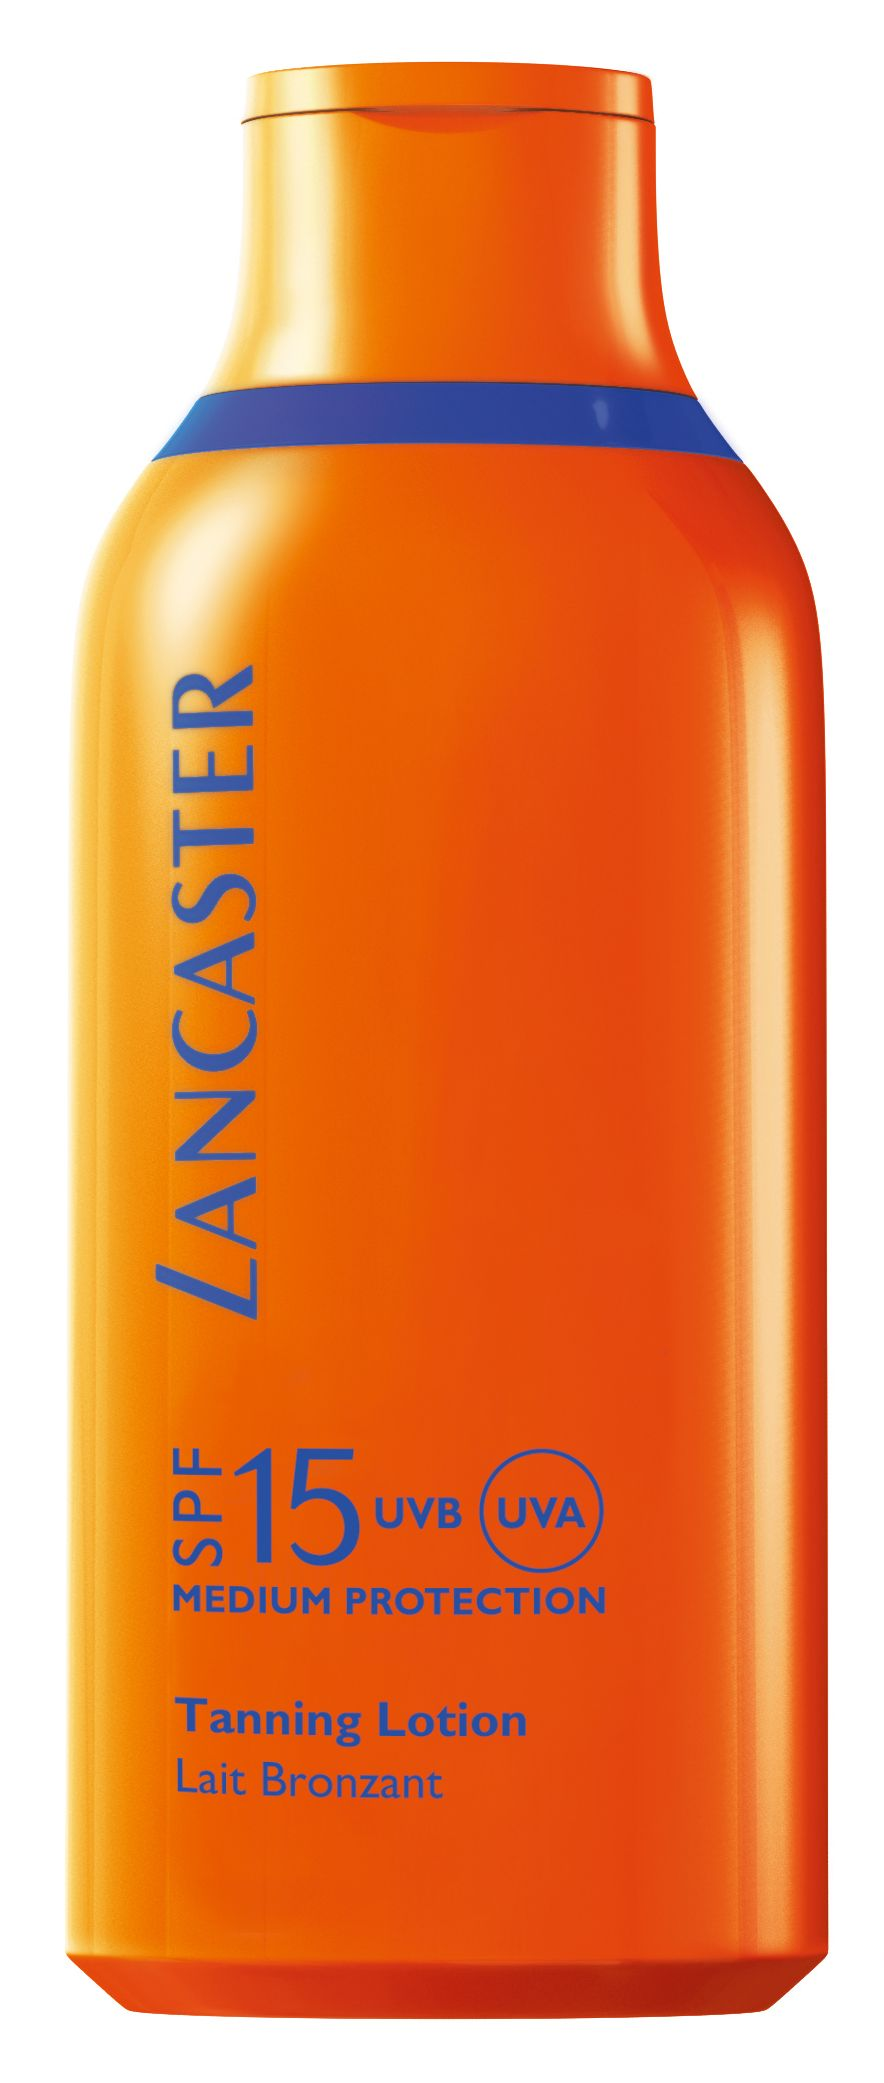 Lancaster 400ml tanning lotion spf 15 - review, compare prices, buy online.